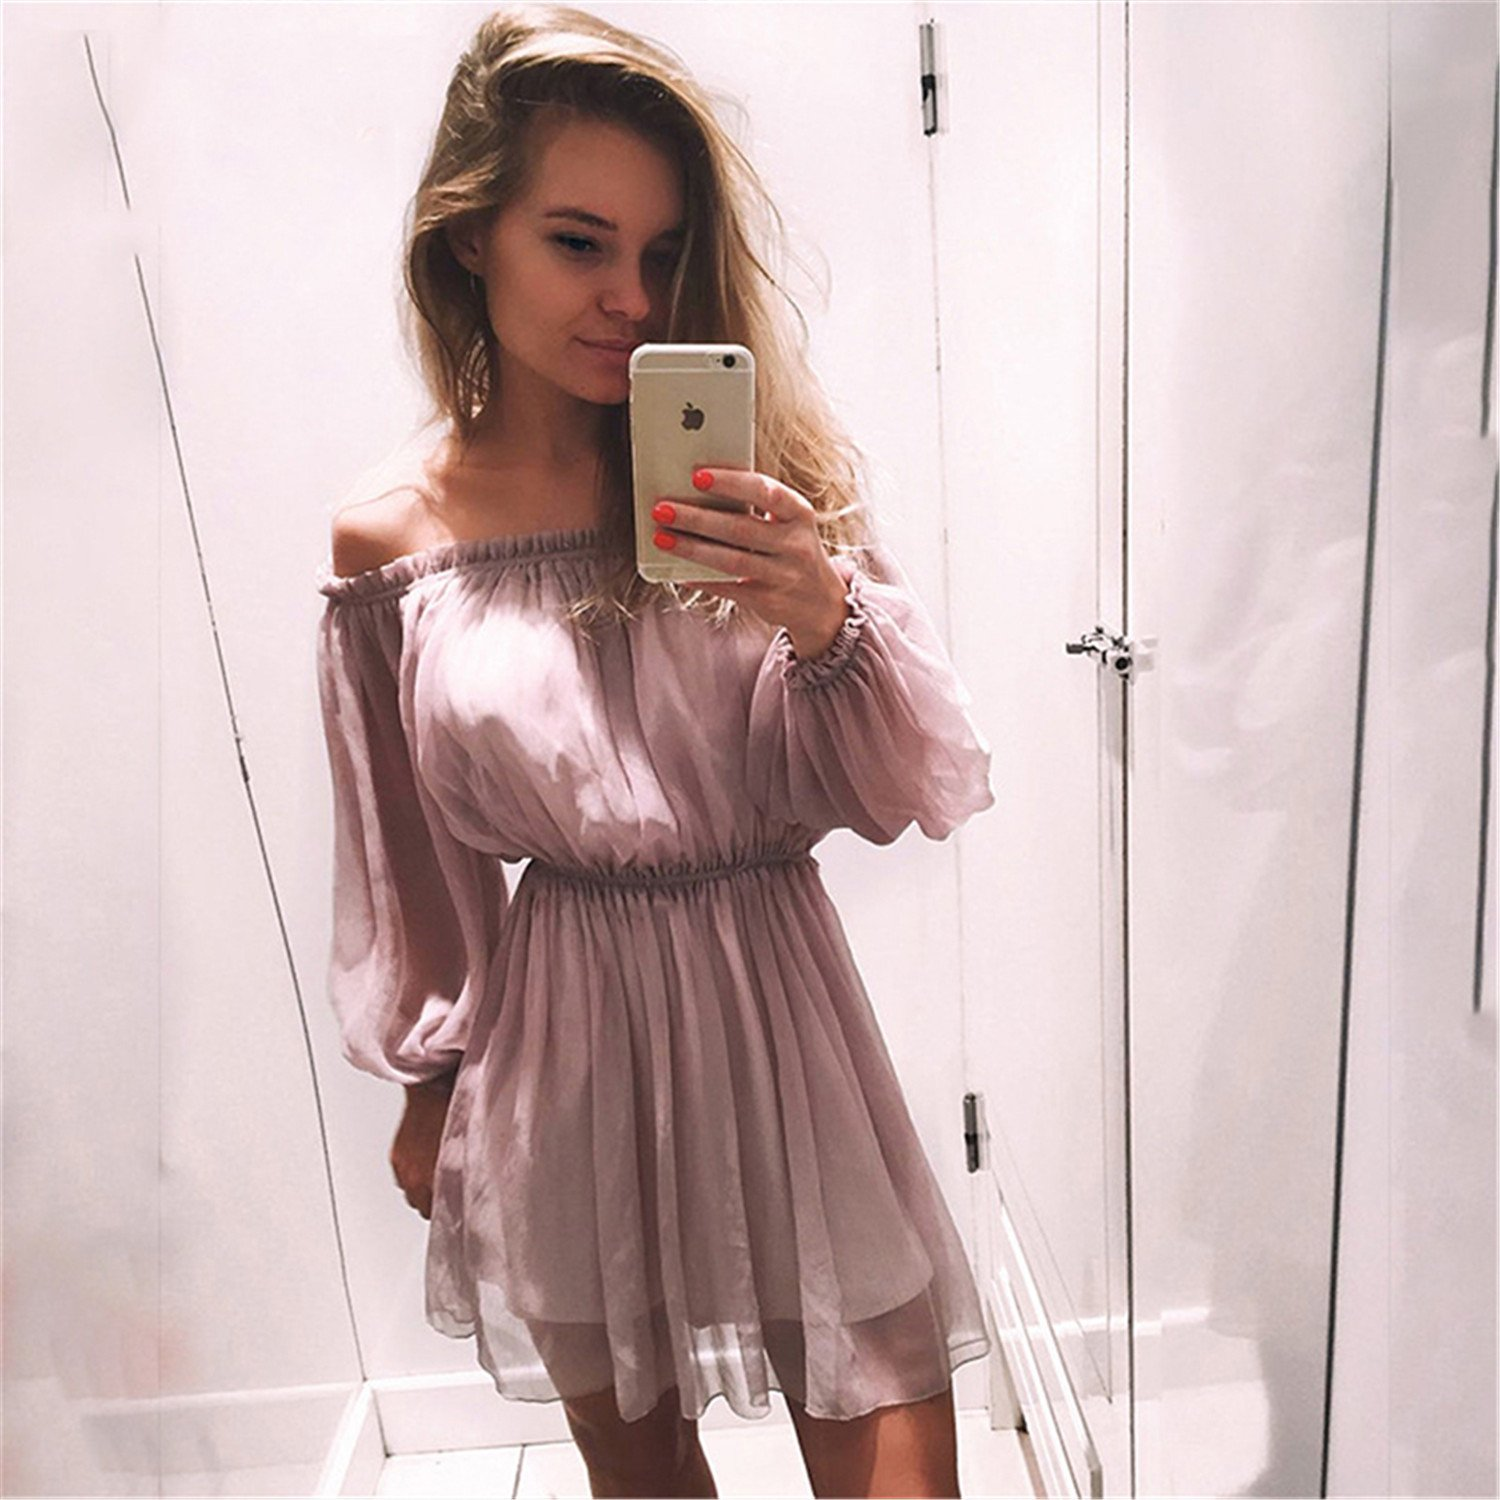 Chiffon Women Boho Clothing Hippie Chic Party Evening Vestidos Pink Dress Summer Beach Tunic Femme A346 at Amazon Womens Clothing store: